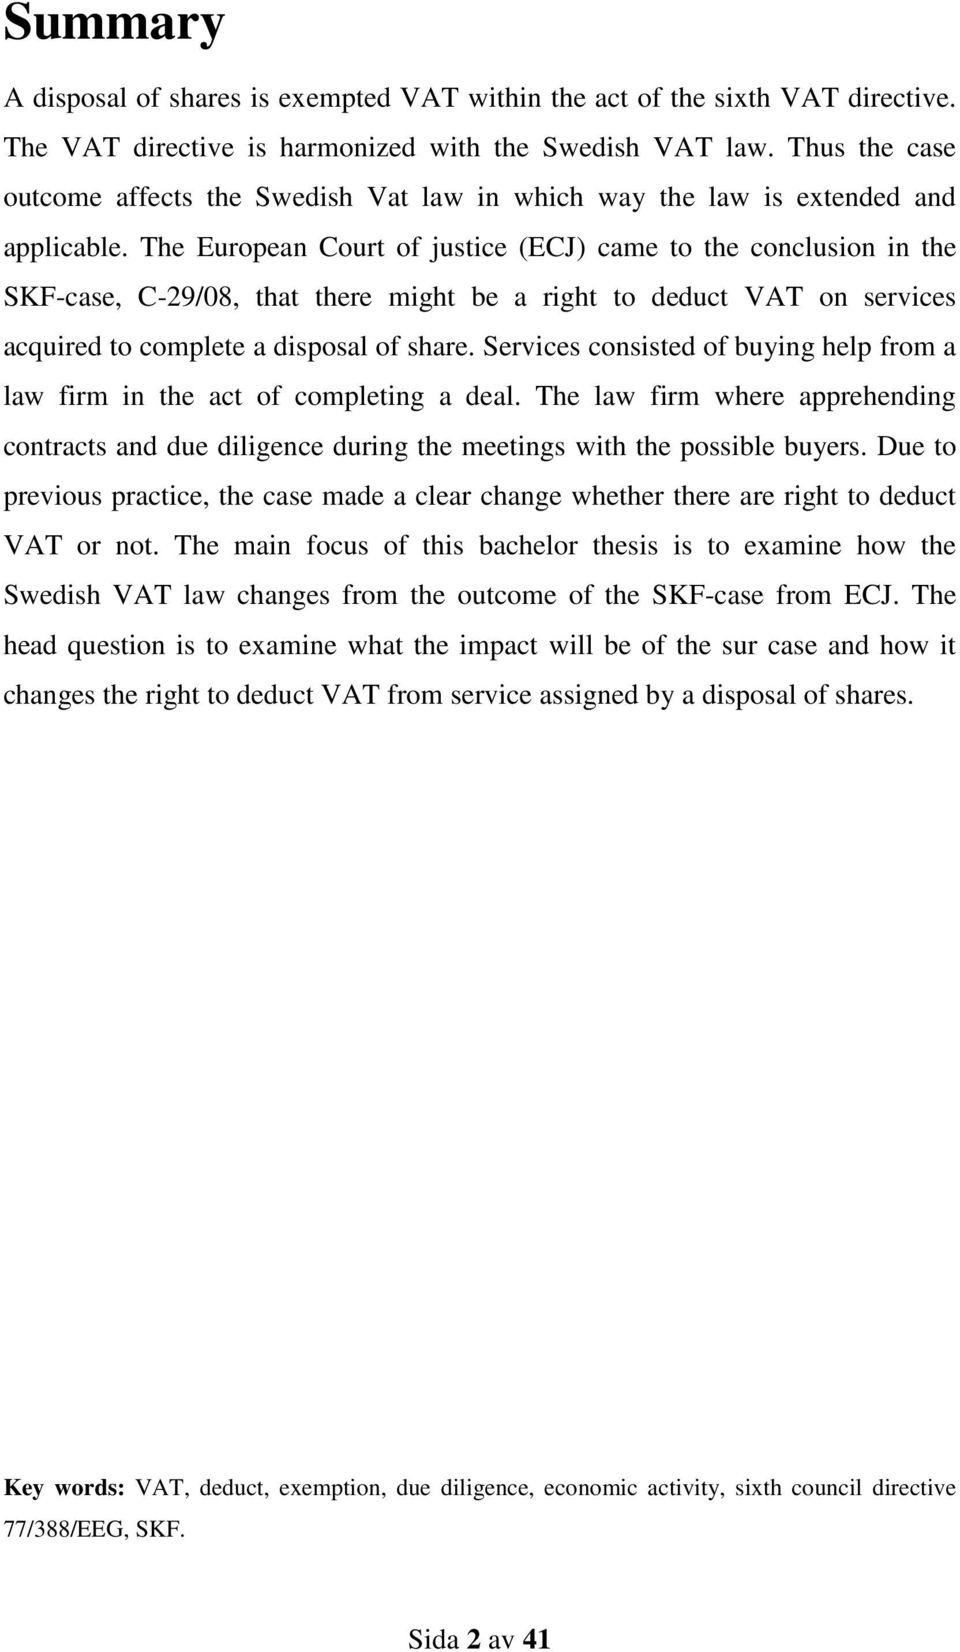 The European Court of justice (ECJ) came to the conclusion in the SKF-case, C-29/08, that there might be a right to deduct VAT on services acquired to complete a disposal of share.